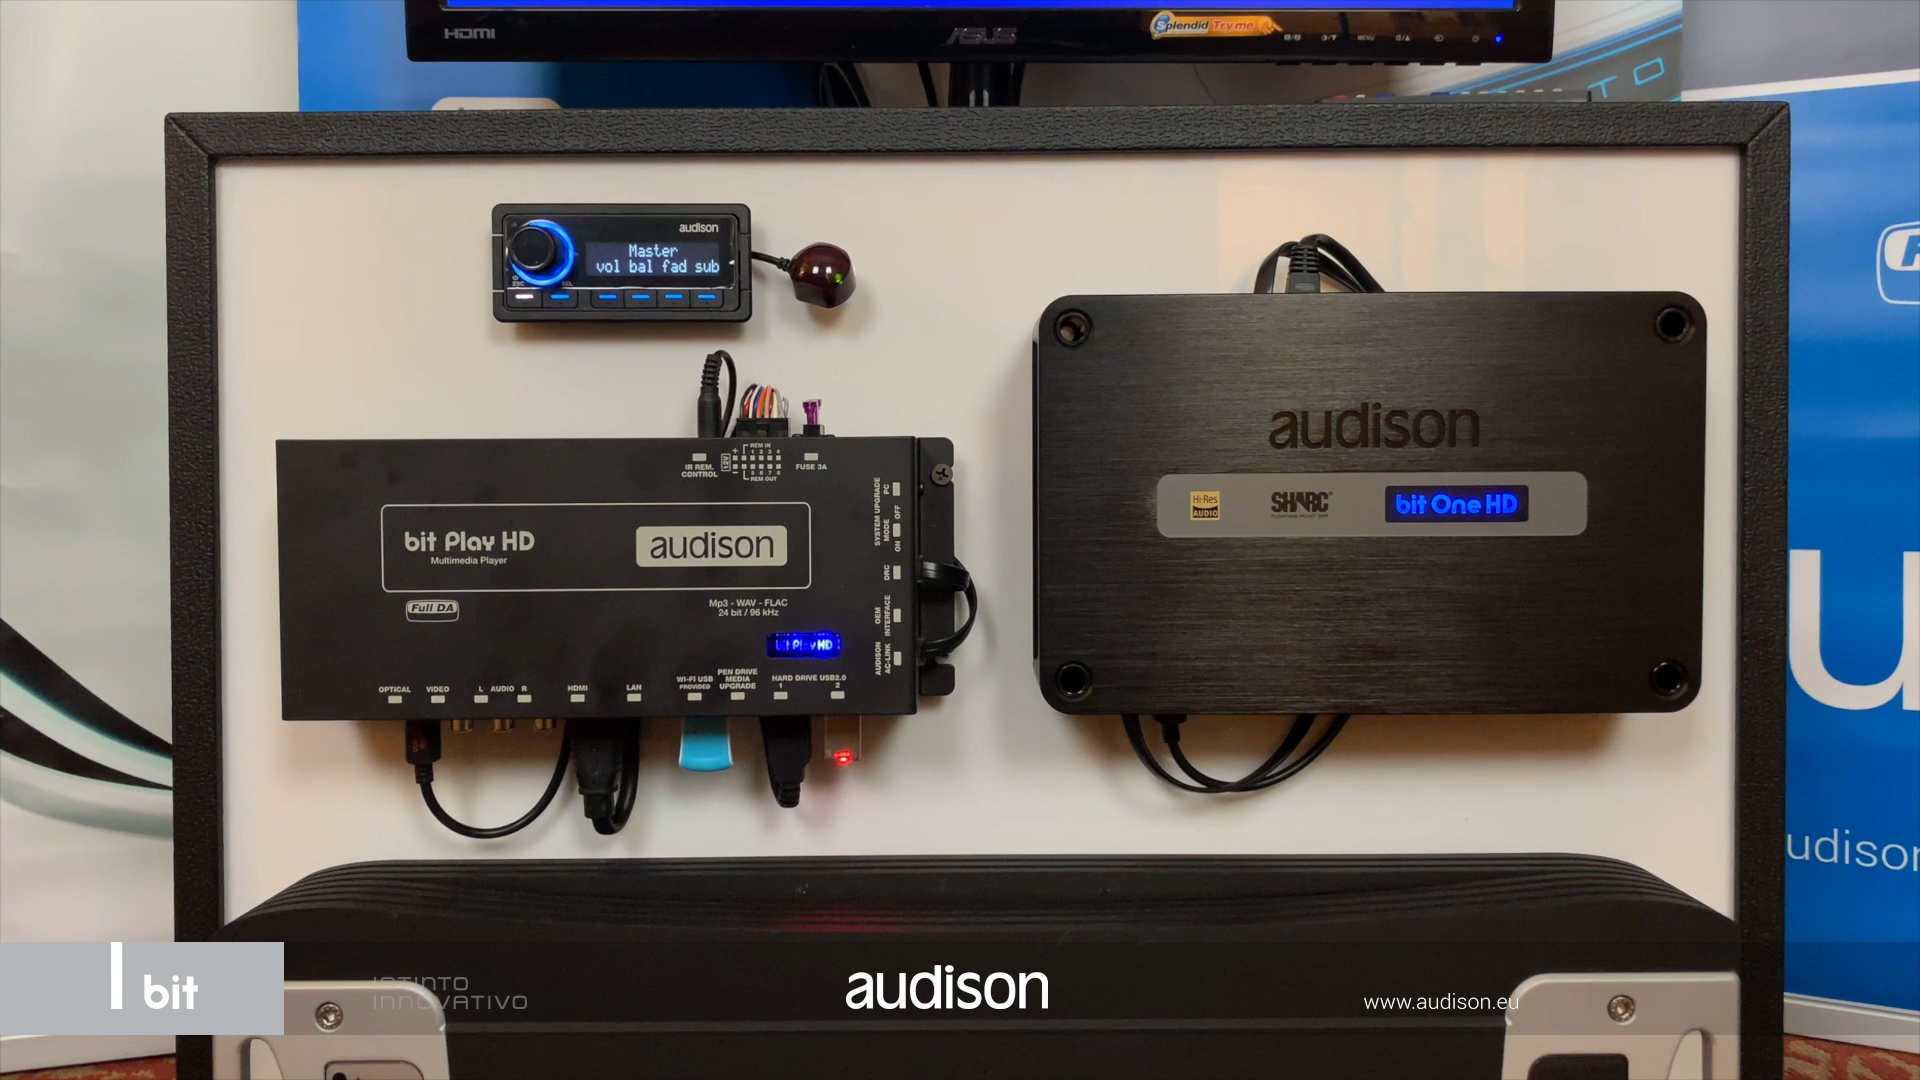 Audison Car Audio Amplifiers Speakers Processors Families Tutorial Electrical Outlets Wiring Connections Youtube Bit One Hd Preview